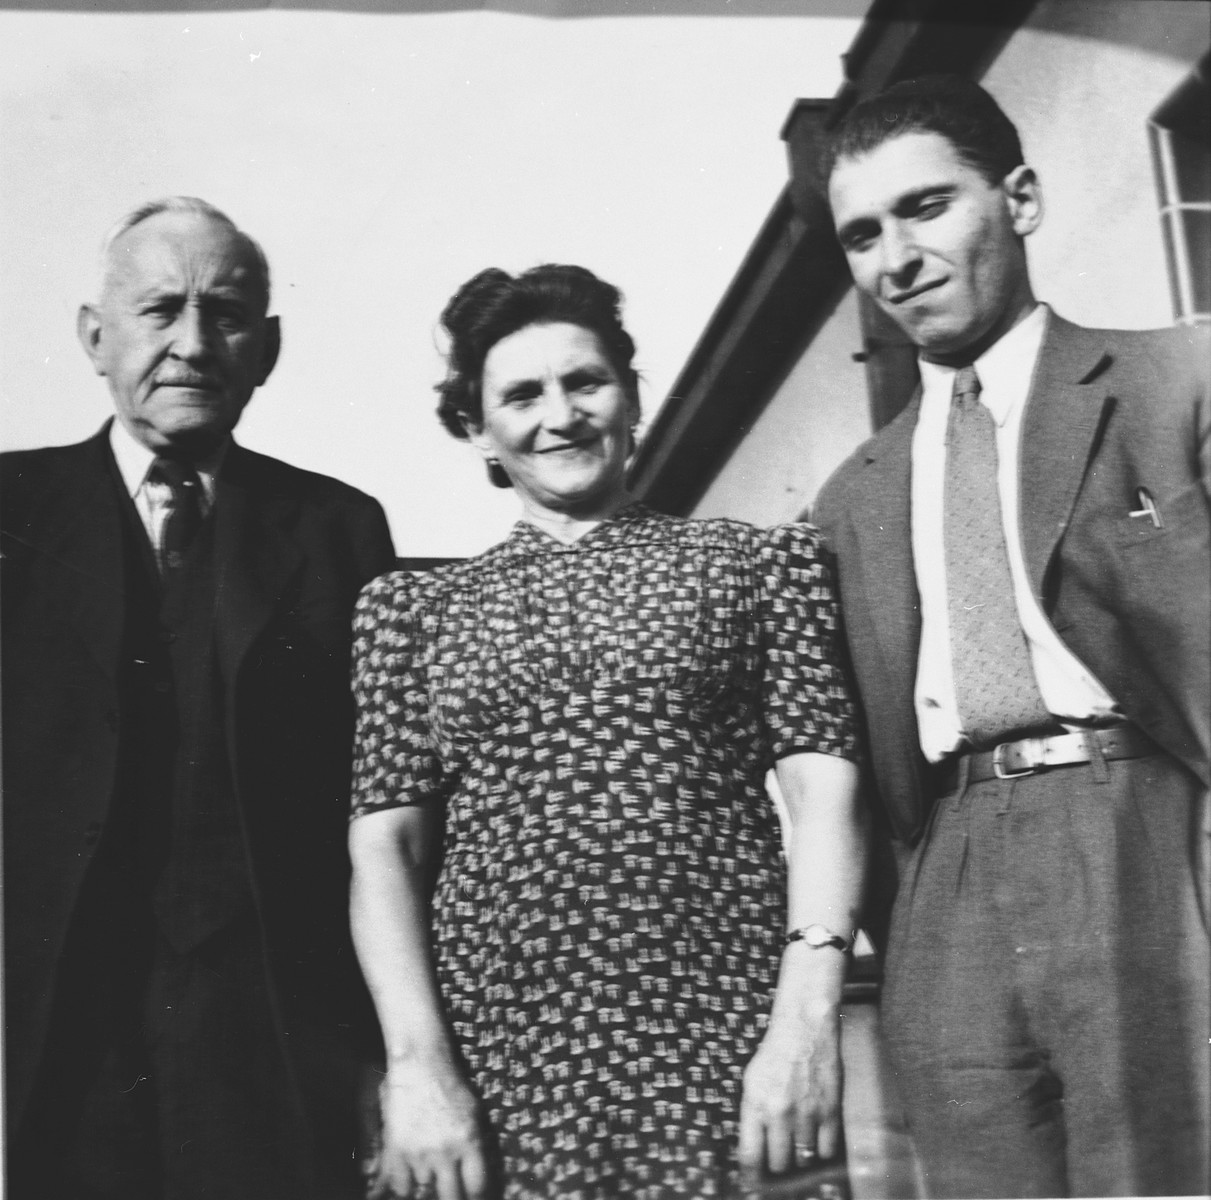 Alois and Elsa Krasa pose on the balcony of their home in Prague with Josef Svehla (Schwartz), a friend of their son, Edgar.  Edgar Krasa credits Josef Svehla with saving his life in Gleiwitz by giving him extra bread.  Josef had served as the cook in the SS kitchen.